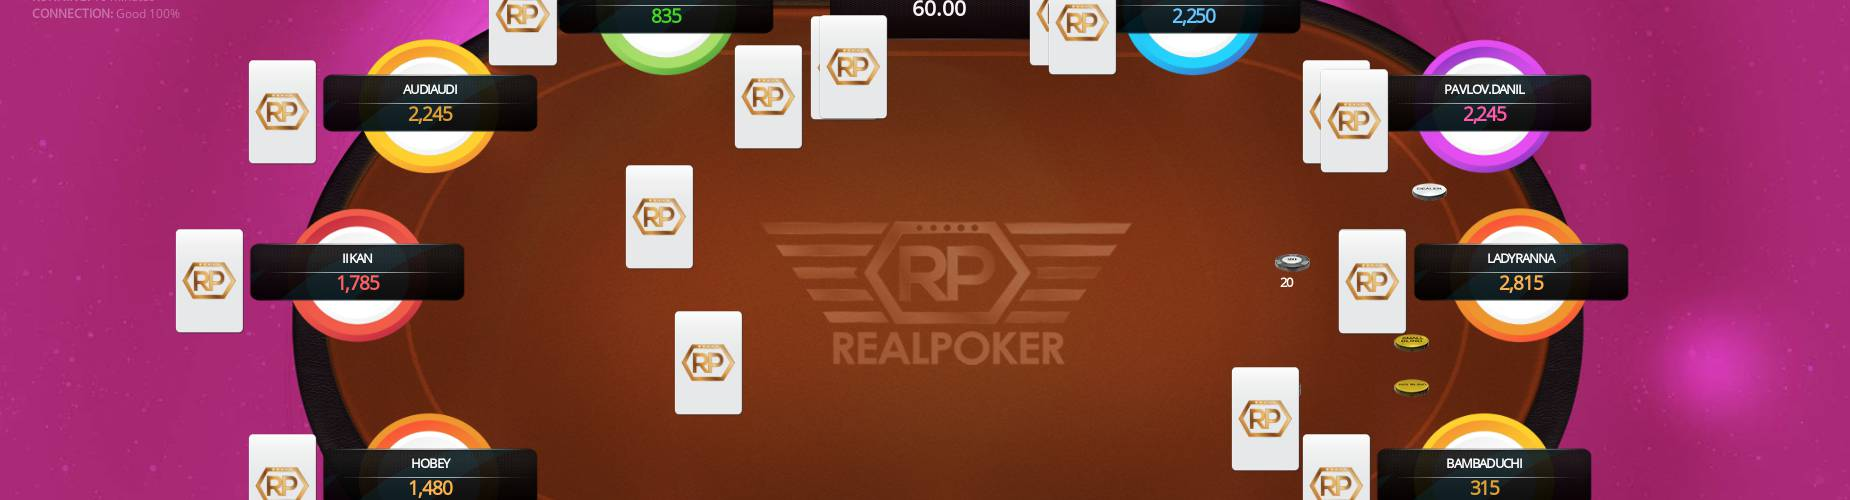 How Can I Double My Money Online with RealPoker.in?